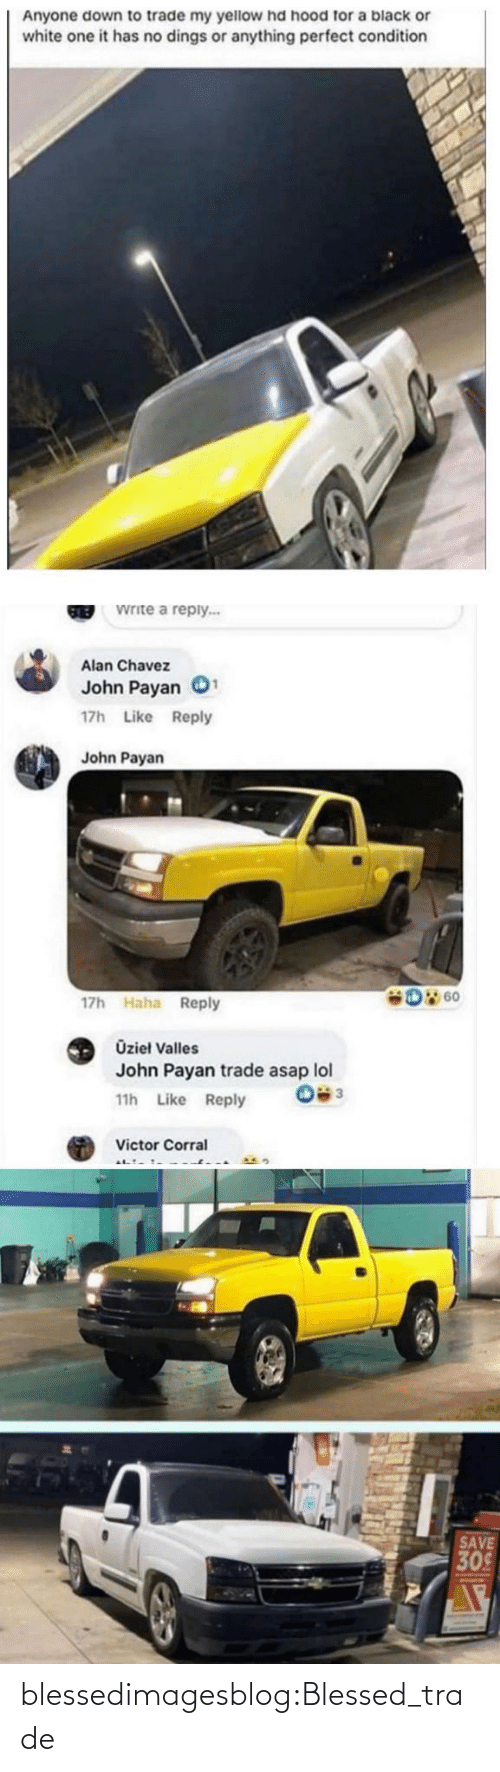 Has No: Anyone down to trade my yellow hd hood for a black or  white one it has no dings or anything perfect condition  Write a reply...  GREB  Alan Chavez  John Payan  17h Like Reply  John Payan  D 60  17h Haha Reply  Üzieł Valles  John Payan trade asap lol  11h Like Reply  Victor Corral  SAVE  309 blessedimagesblog:Blessed_trade